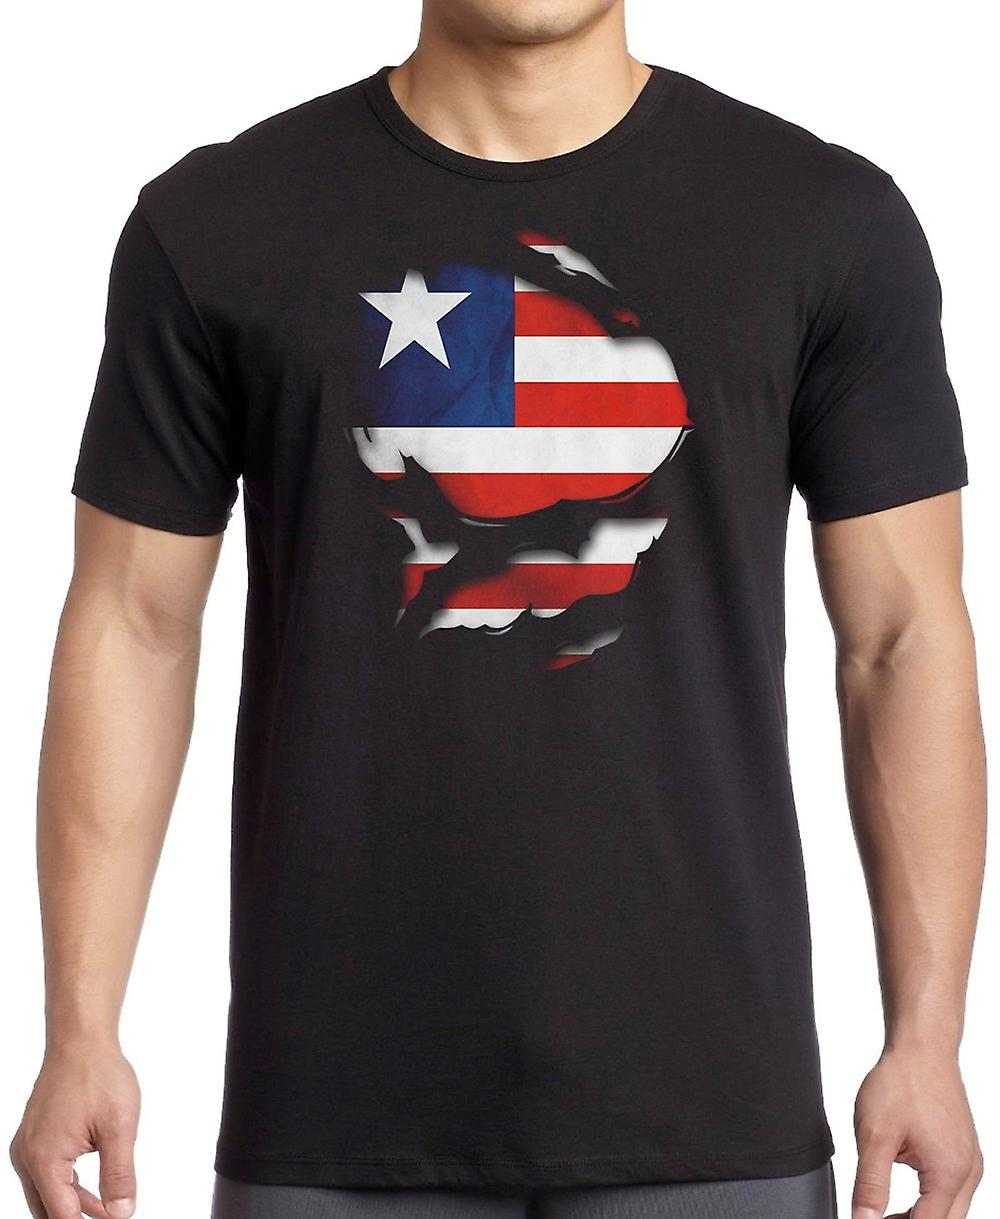 Liberia Liberian Ripped Effect Under Shirt T Shirt